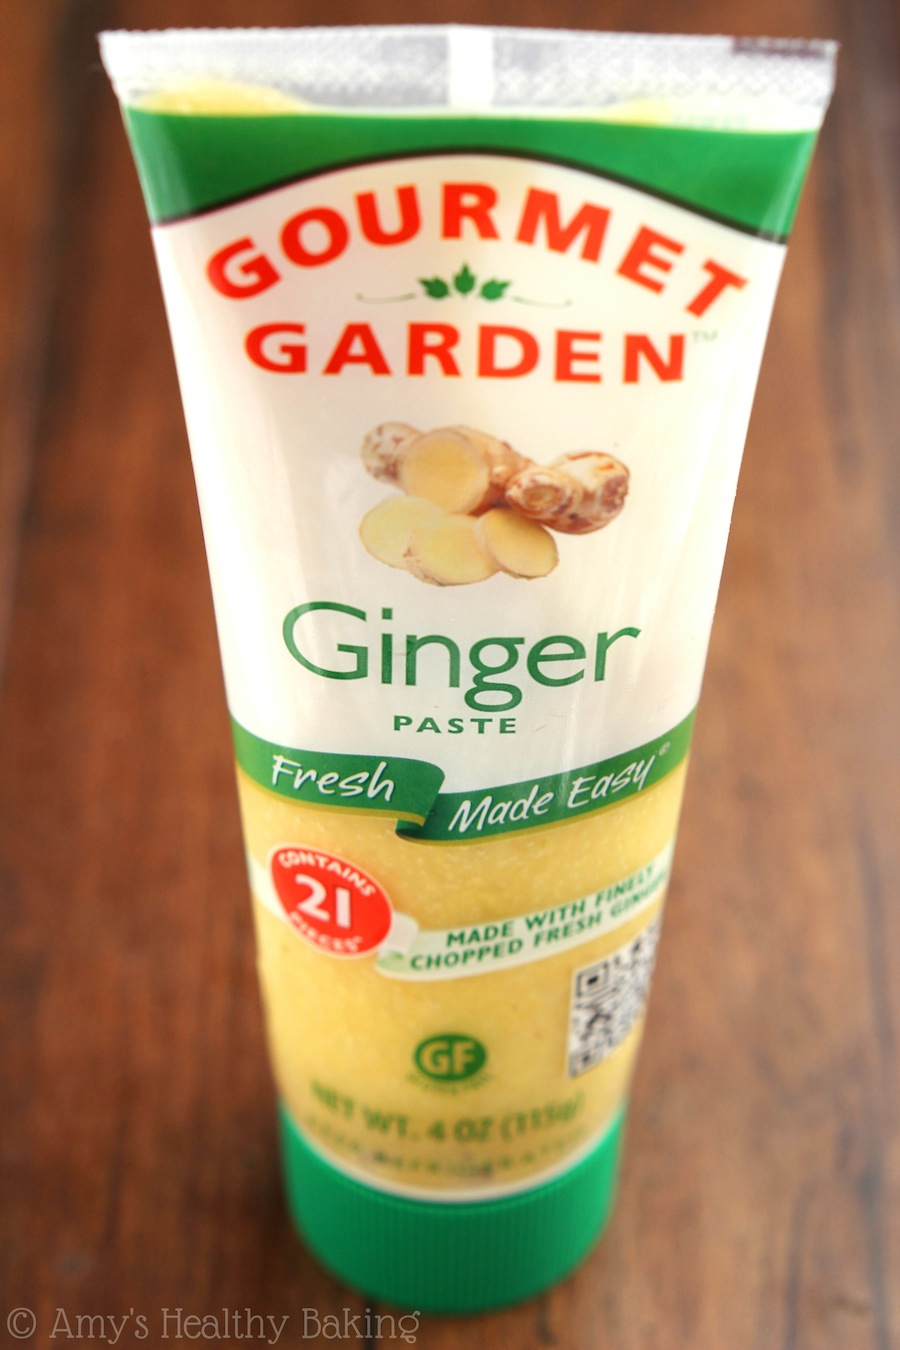 Gourmet Garden Ginger Paste